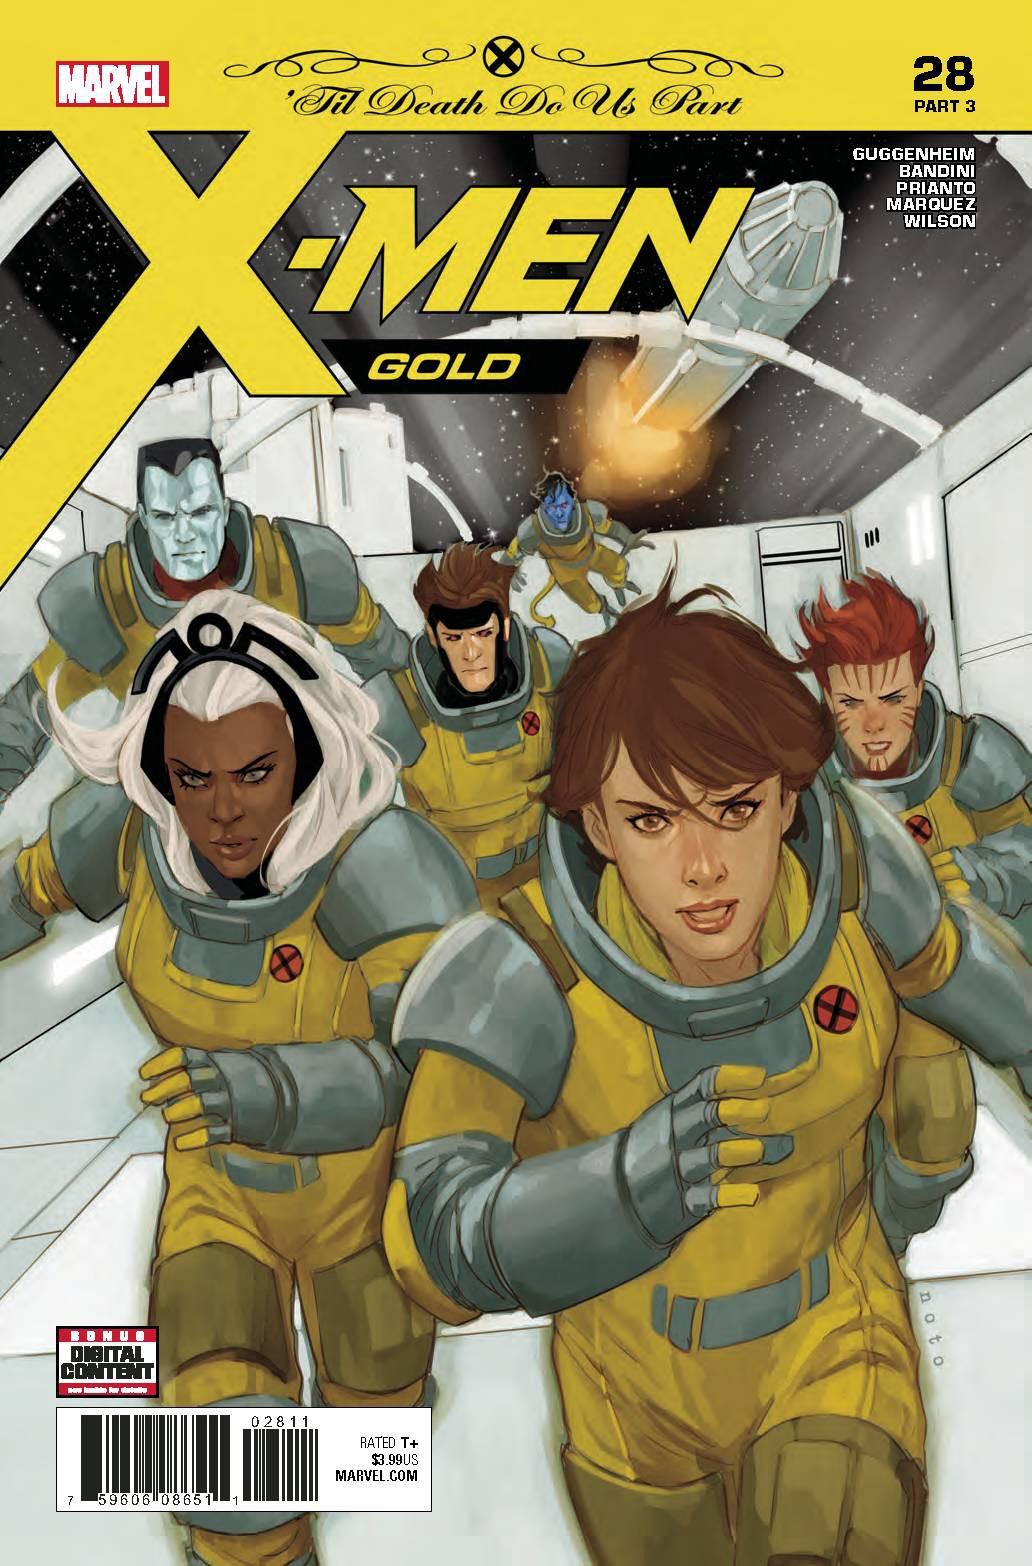 Marvel X-Men Gold #28 by